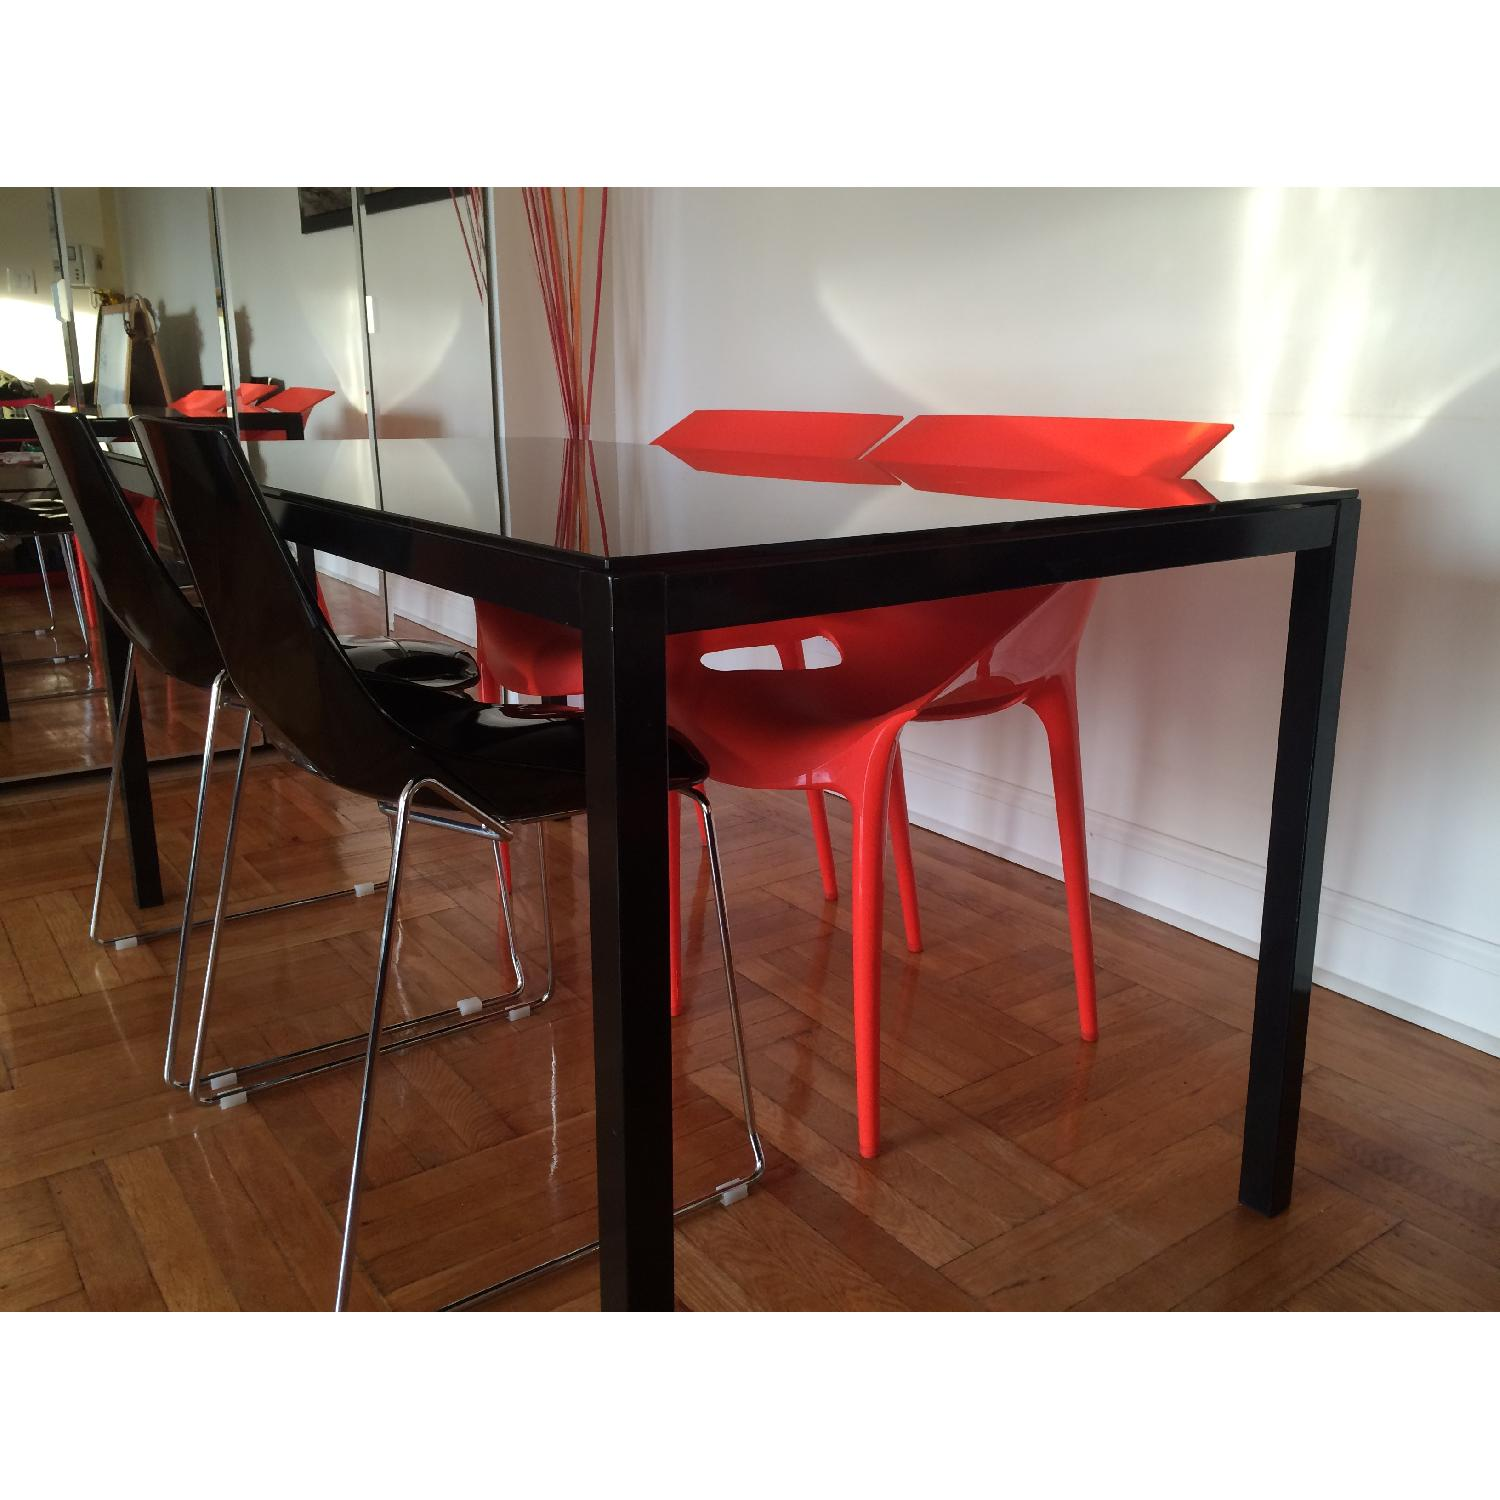 Kartell Dr. Yes Chair by Philippe Starck in Matte Orange Red - image-7